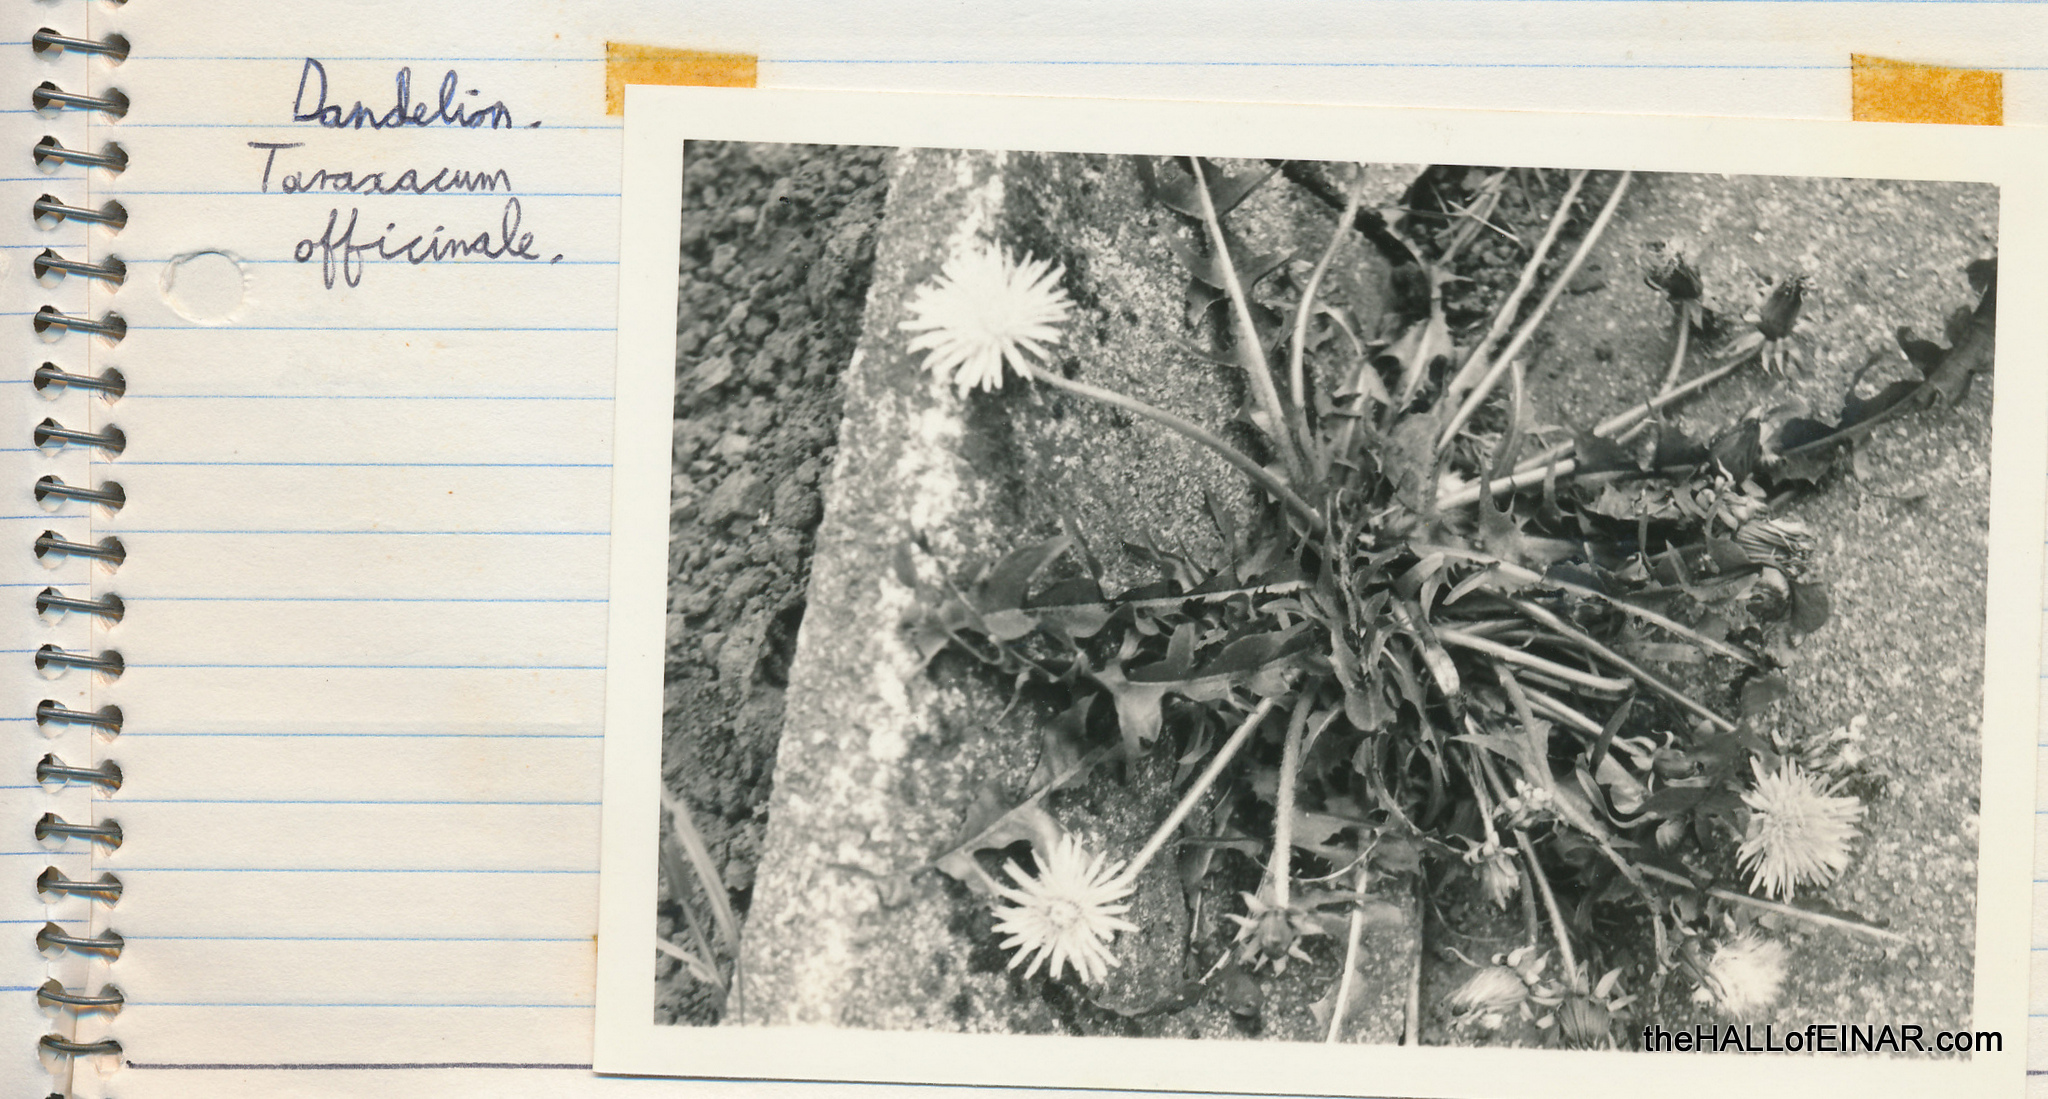 Dandelion - 1970s Nature Notebooks - The Hall of Einar